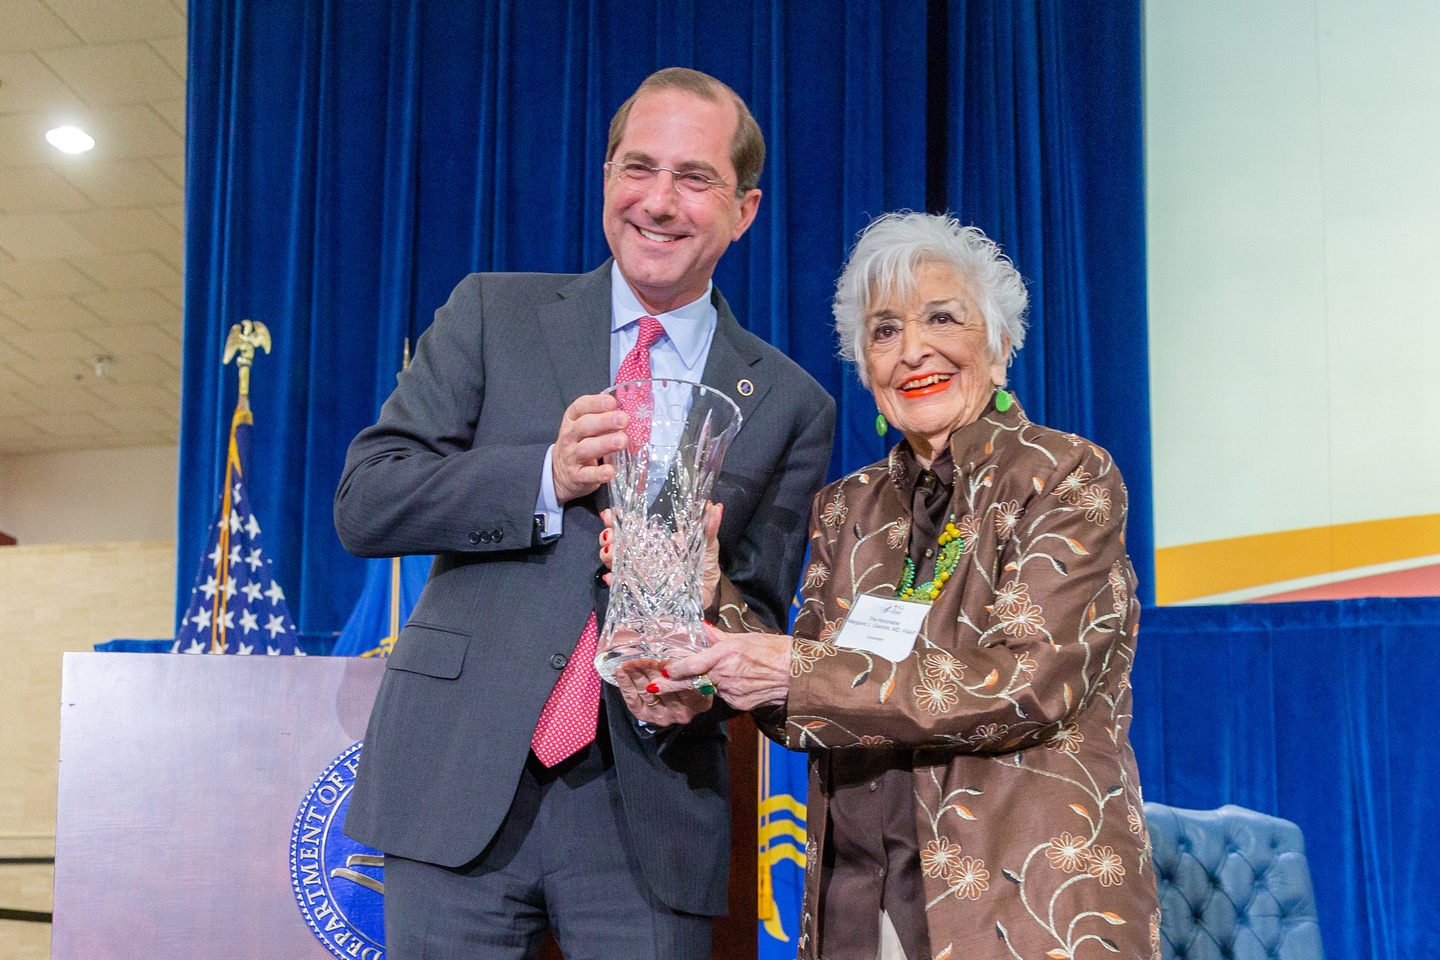 Sec. Azar presents award to Dr. Margaret Giannini